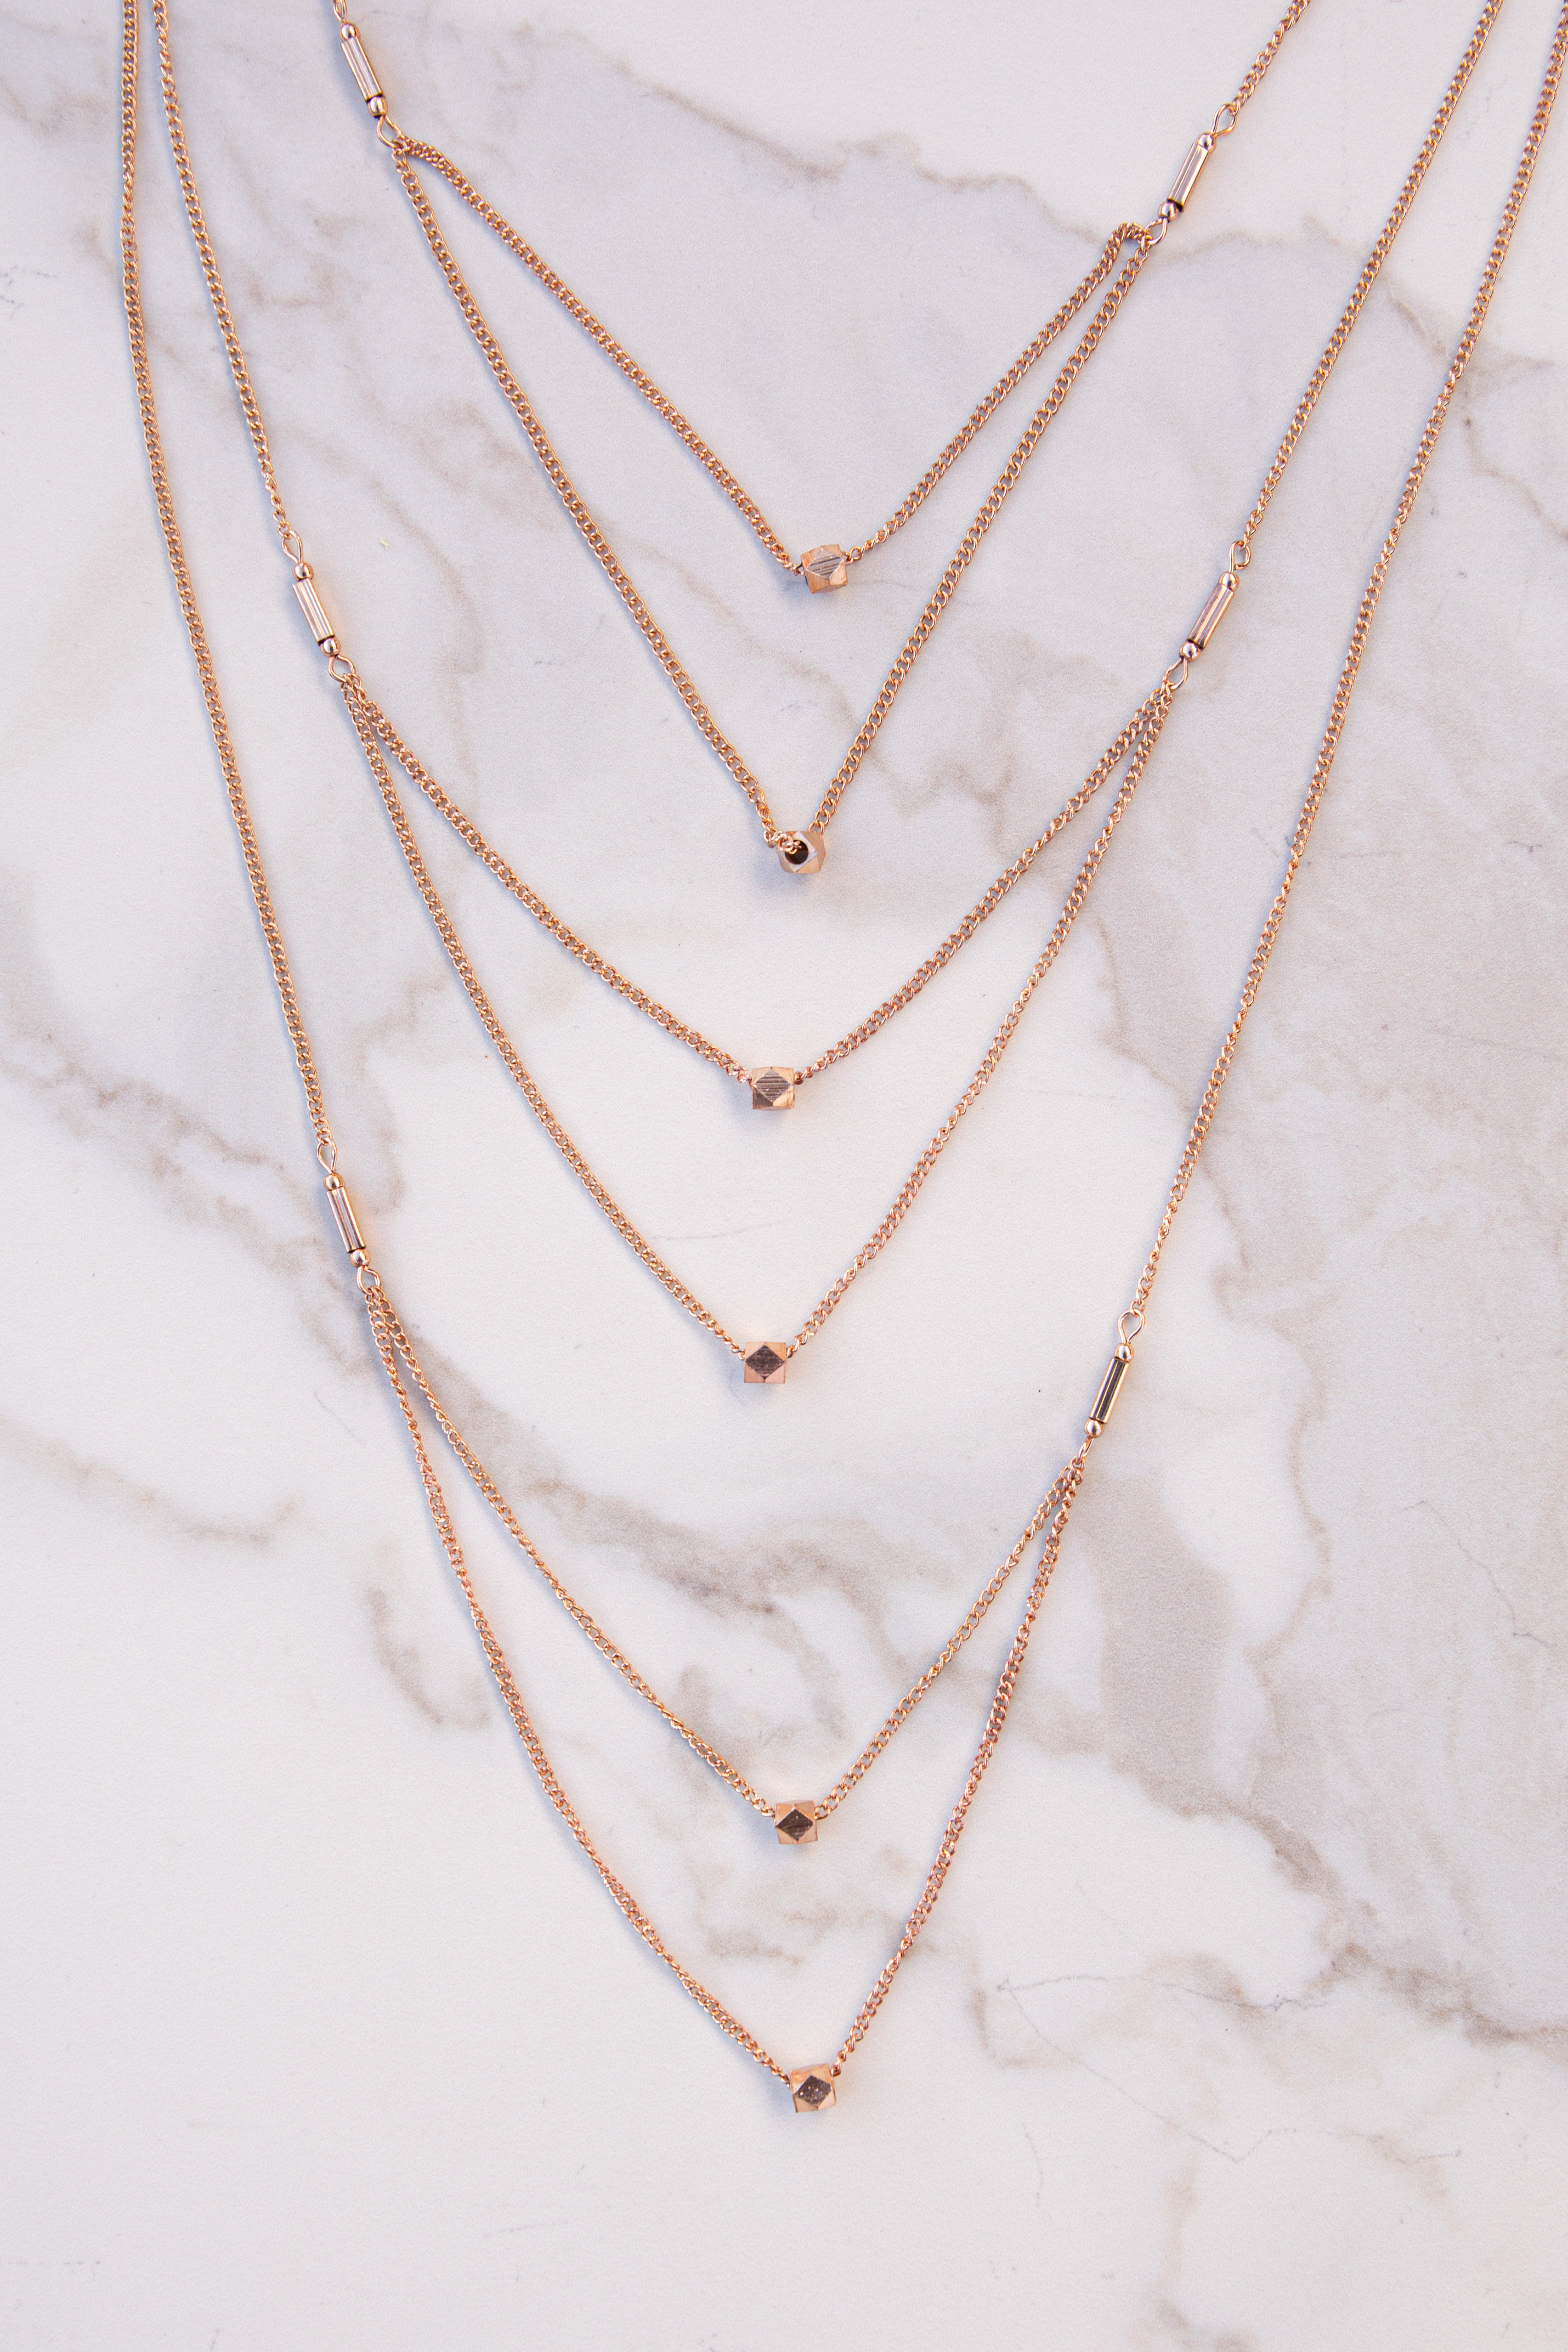 Rose Gold Layered Necklace with Metallic Geometric Beads